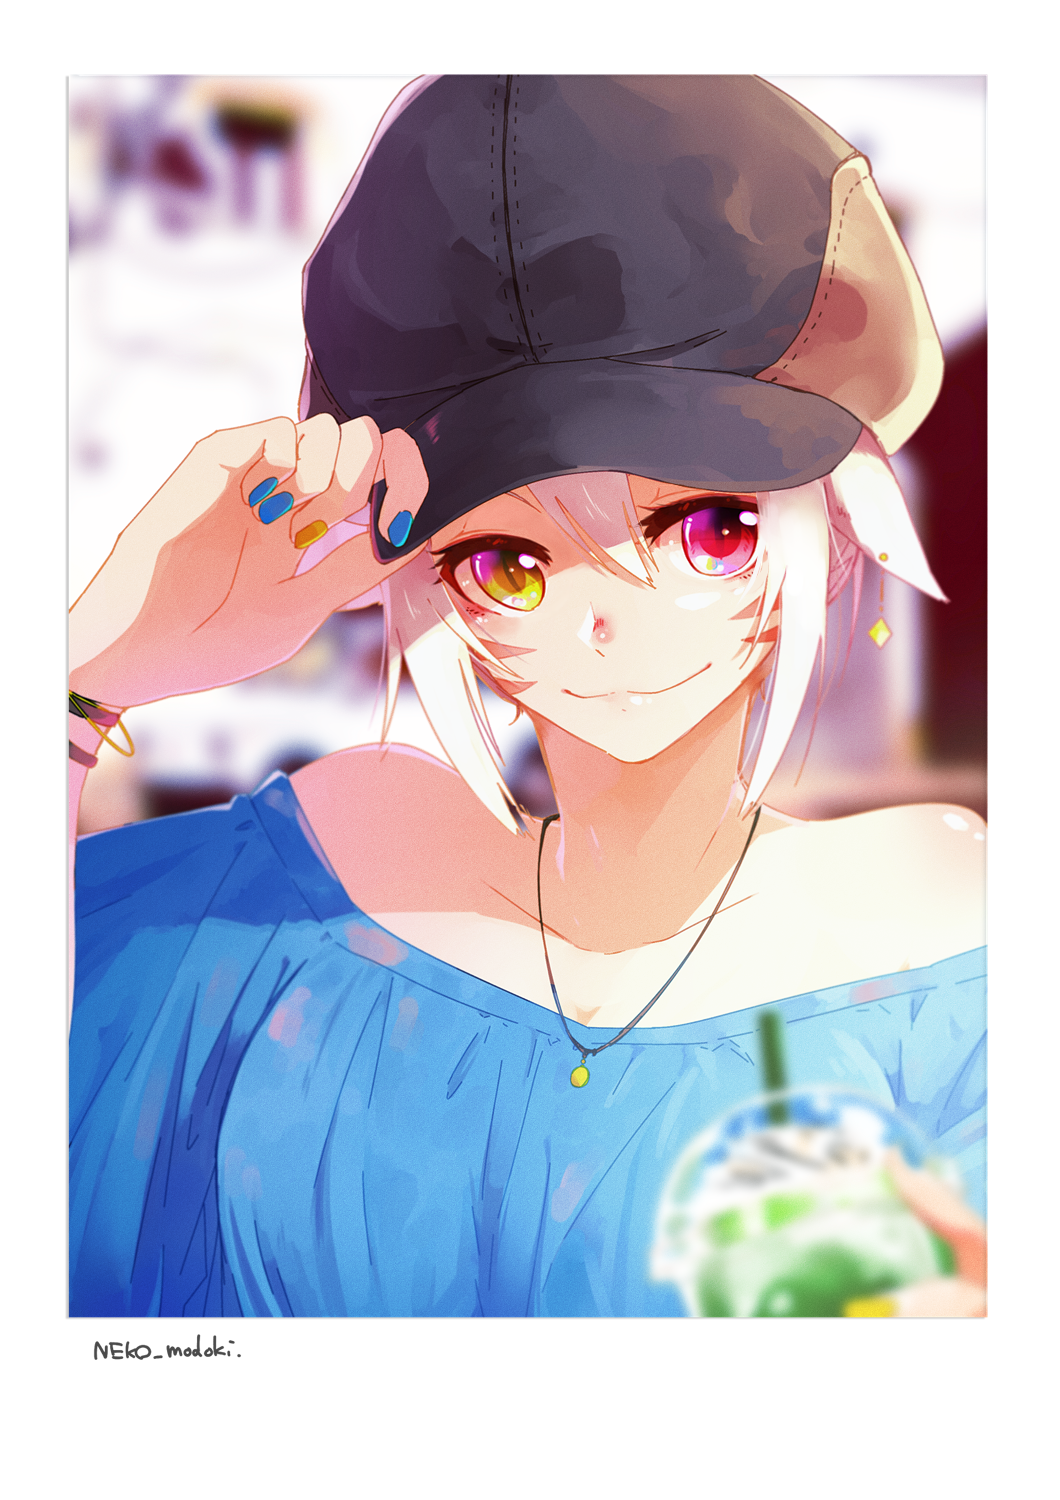 1girl bare_shoulders blurry blurry_background blurry_foreground bracelet casual close-up collarbone cup drinking_glass earrings face facial_mark final_fantasy final_fantasy_xiv hand_on_headwear hat heterochromia highres jewelry lili_mdoki looking_at_viewer miqo'te nail_polish necklace off_shoulder short_hair slit_pupils smile solo white_hair